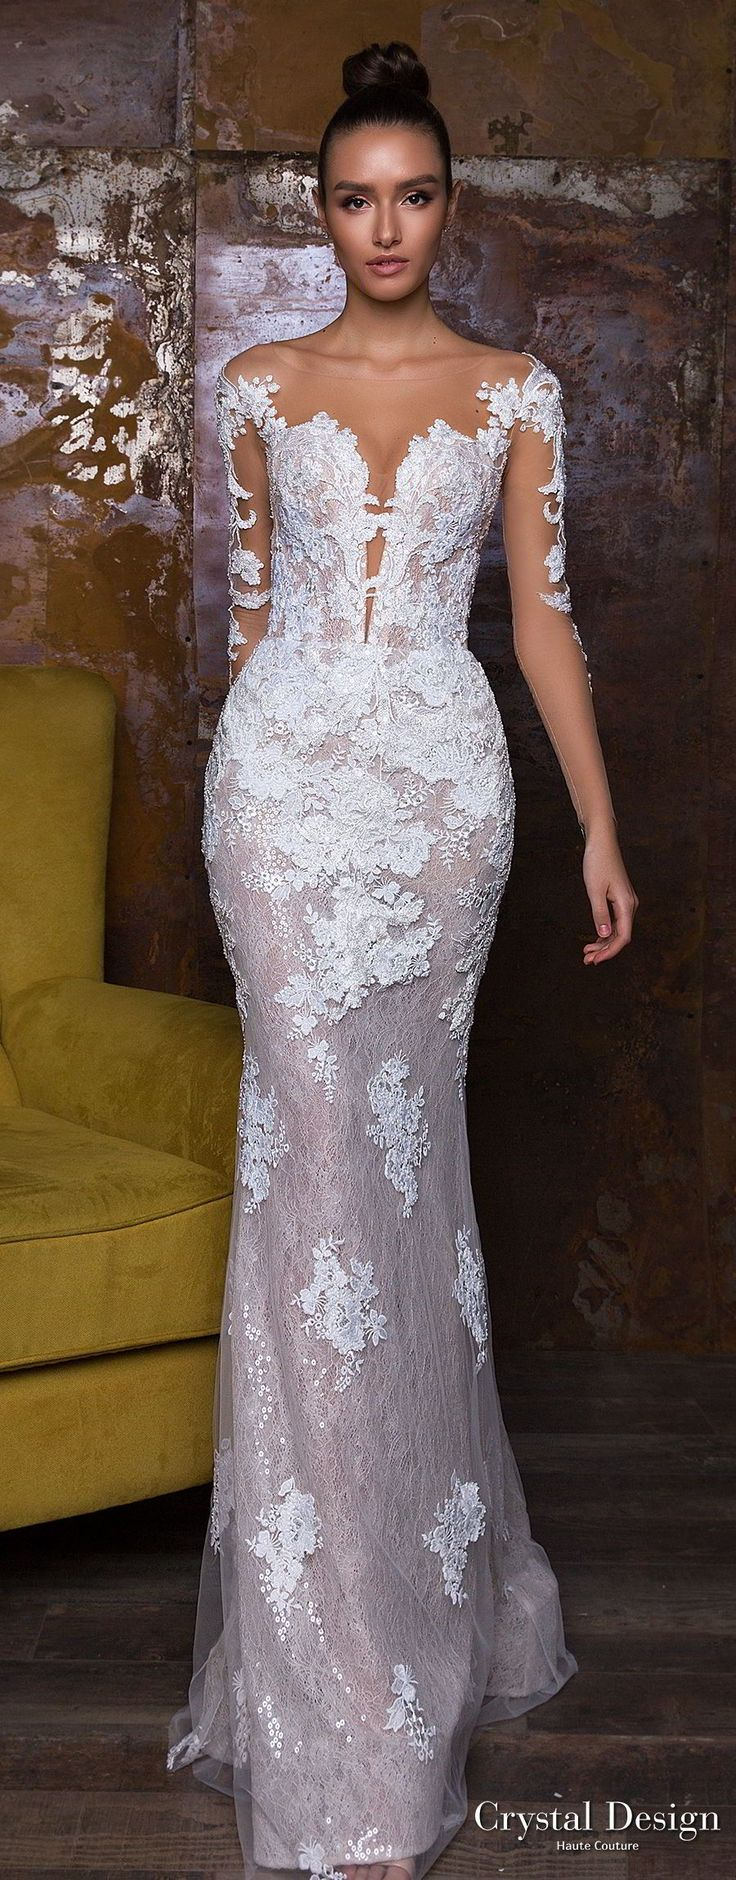 crystal design 2018 long sleeves sheer bateau sweetheart neckline full embellishment peplum princess sheath wedding dress sheer button royal train (nika) lv -- Crystal Design 2018 Wedding Dresses #weddinggowns